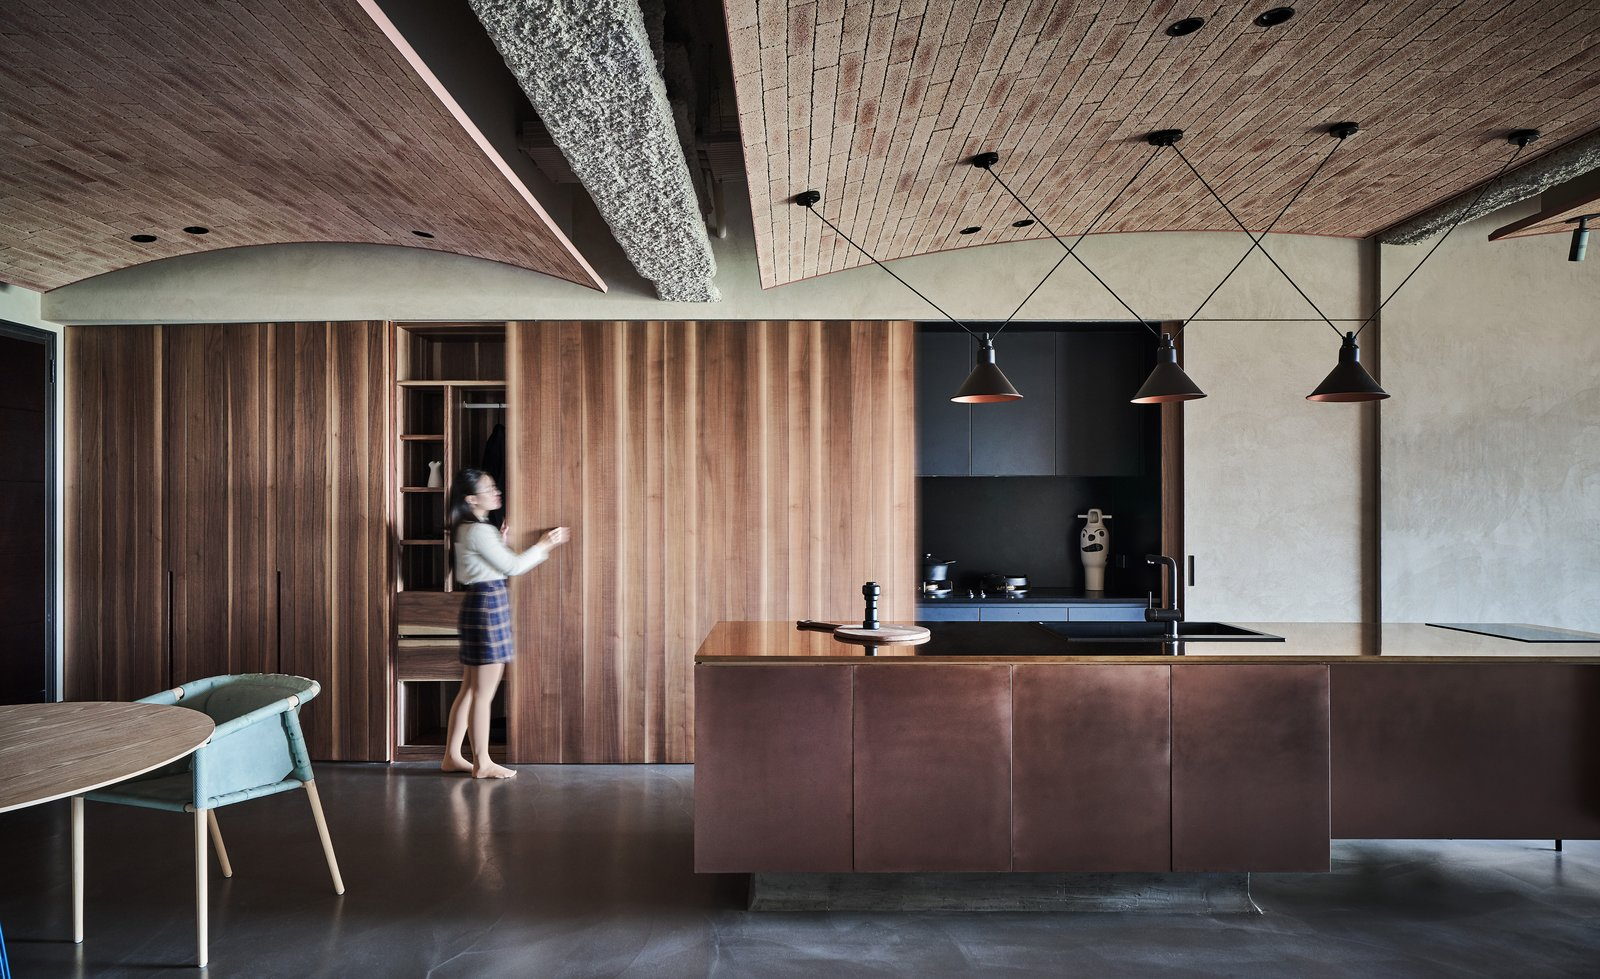 Kitchen, Metal, Wood, Pendant, Concrete, Metal, Drop In, Recessed, and Cooktops A Taiwanese expat couple purchased a 1,352-square-foot apartment near the river in the Taiwan's New Taipei City, and reached out to interior design firm KC Design Studio to help them turn it into a stylish, modern home. Industrial elements like steel, brick, and exposed concrete harmonize with vintage accents: in the open kitchen, wood-paneled sliding doors conceal dark cabinetry. These combine with a sleek, dark counter and a shiny, bronze-clad island for a luxe effect.  Kitchen Concrete Metal Photos from Vintage and Industrial Elements Combine in an Updated Taiwan Apartment